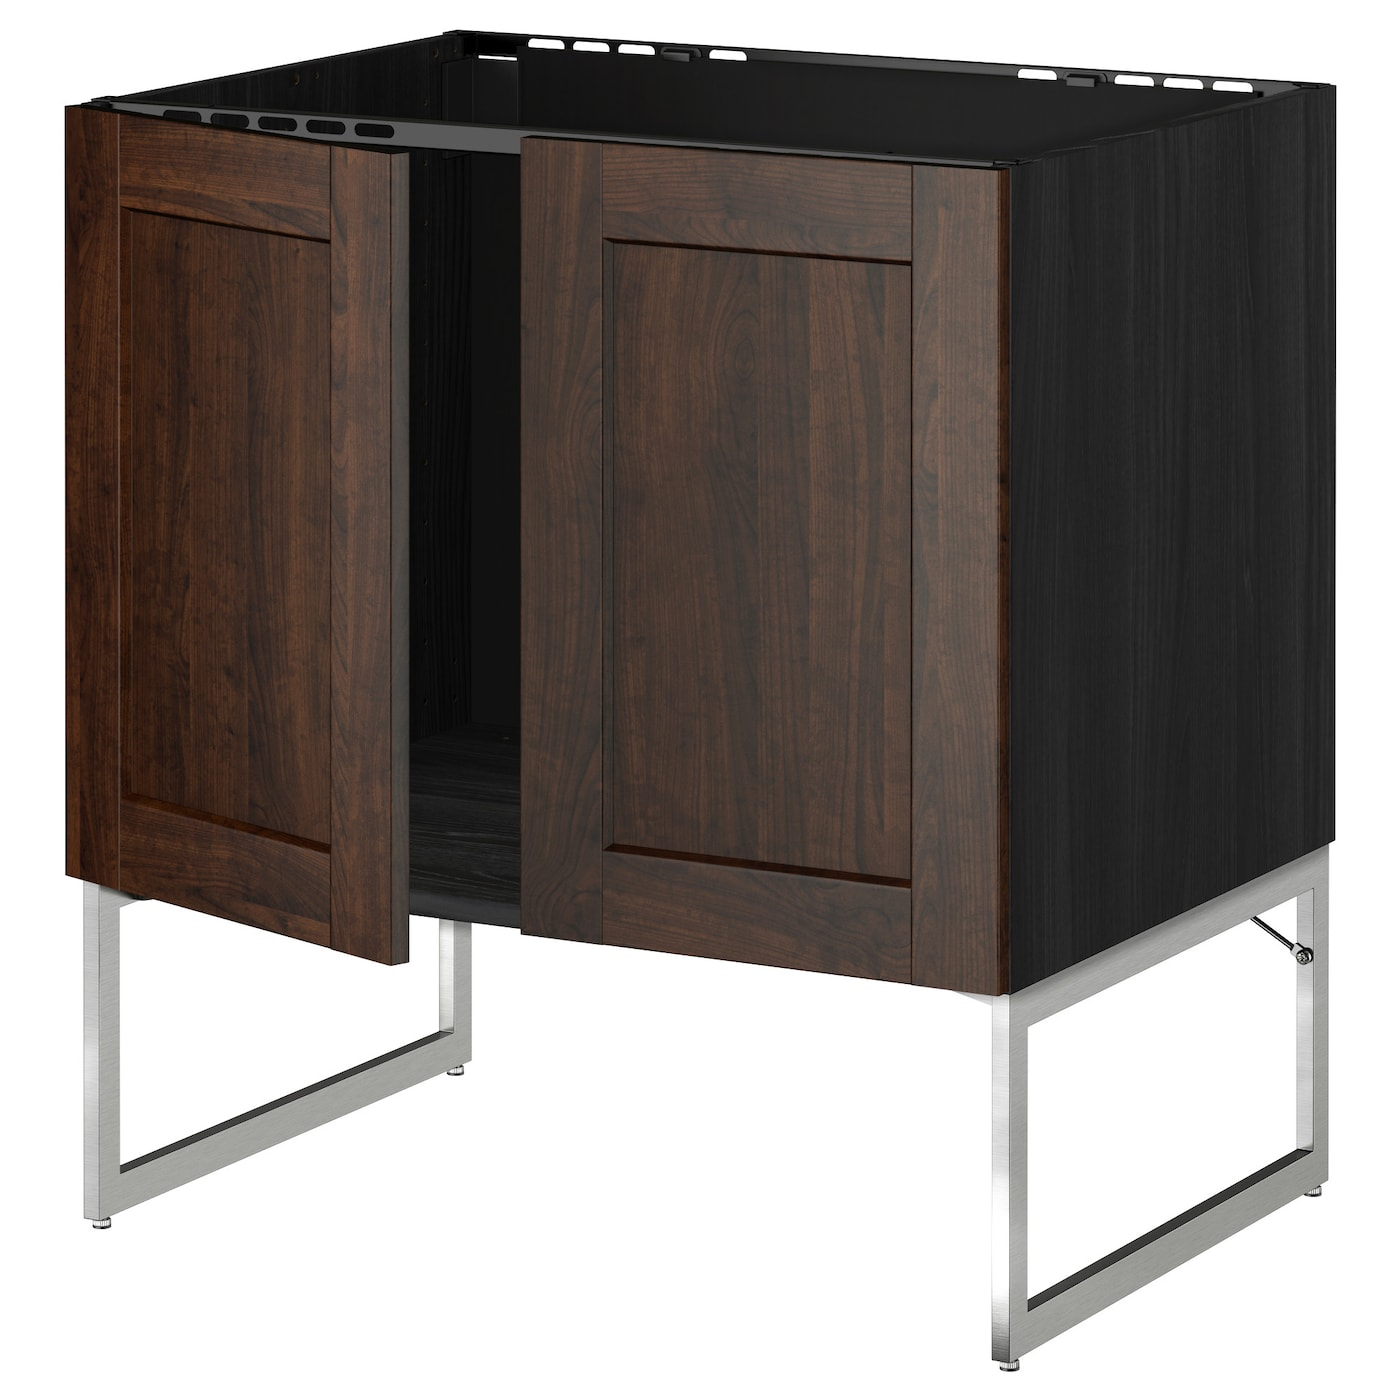 ikea kitchen cabinet construction metod base cabinet for sink 2 doors black edserum brown 17614